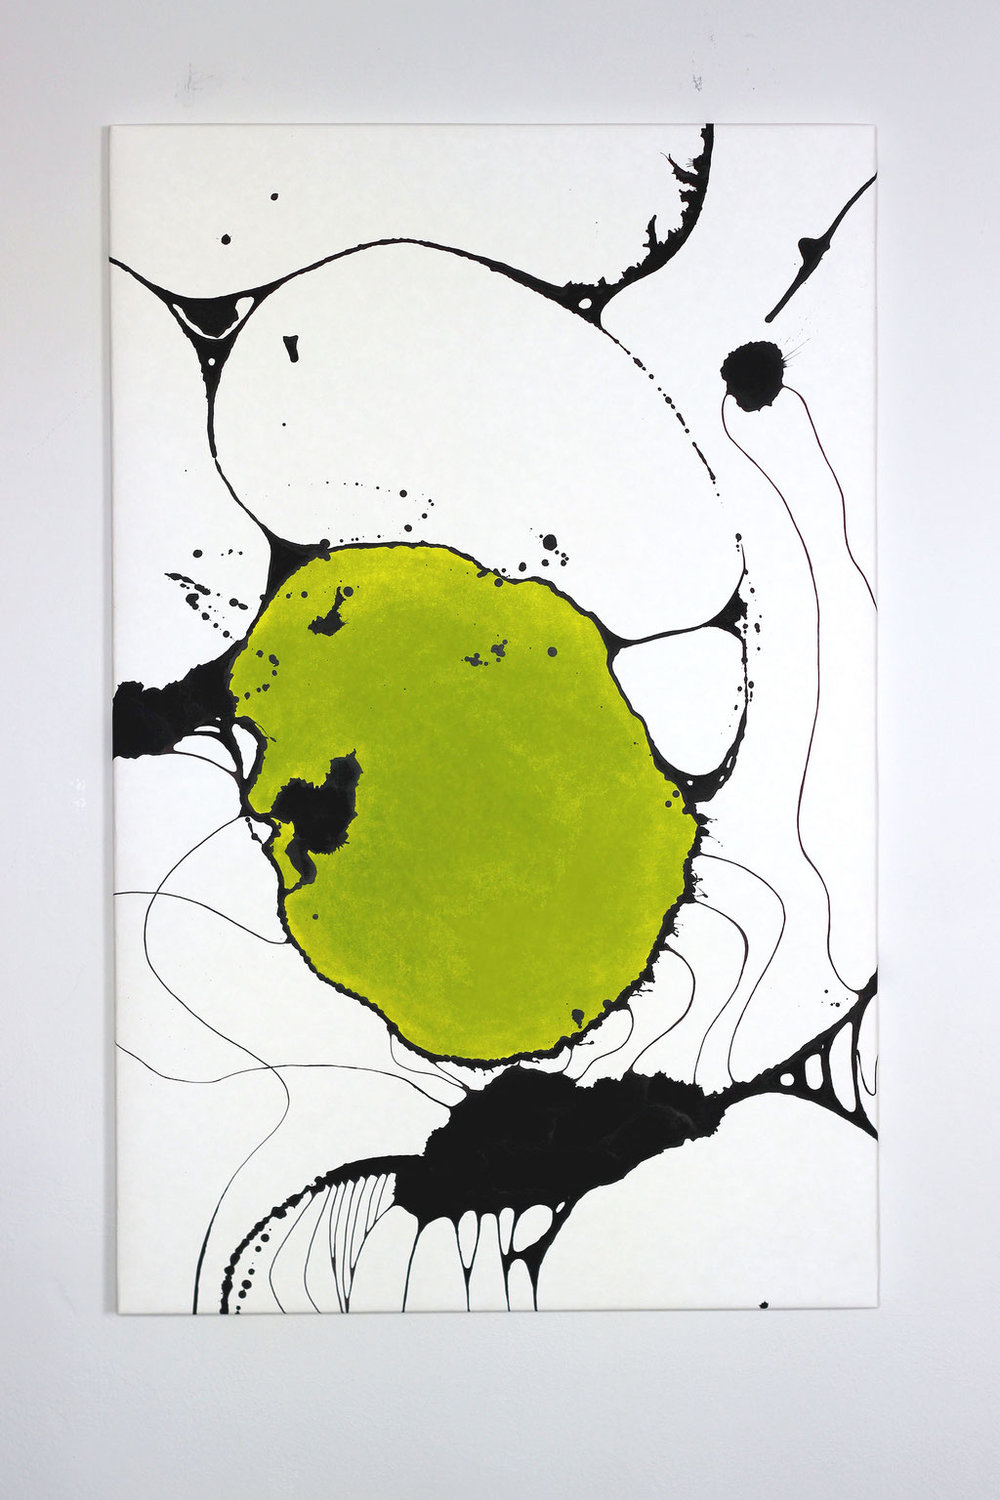 Zwerg  - Acrylic paint on cellulose-latex paper.Stretched over wooden frame.height: 140cm   width: 90cm